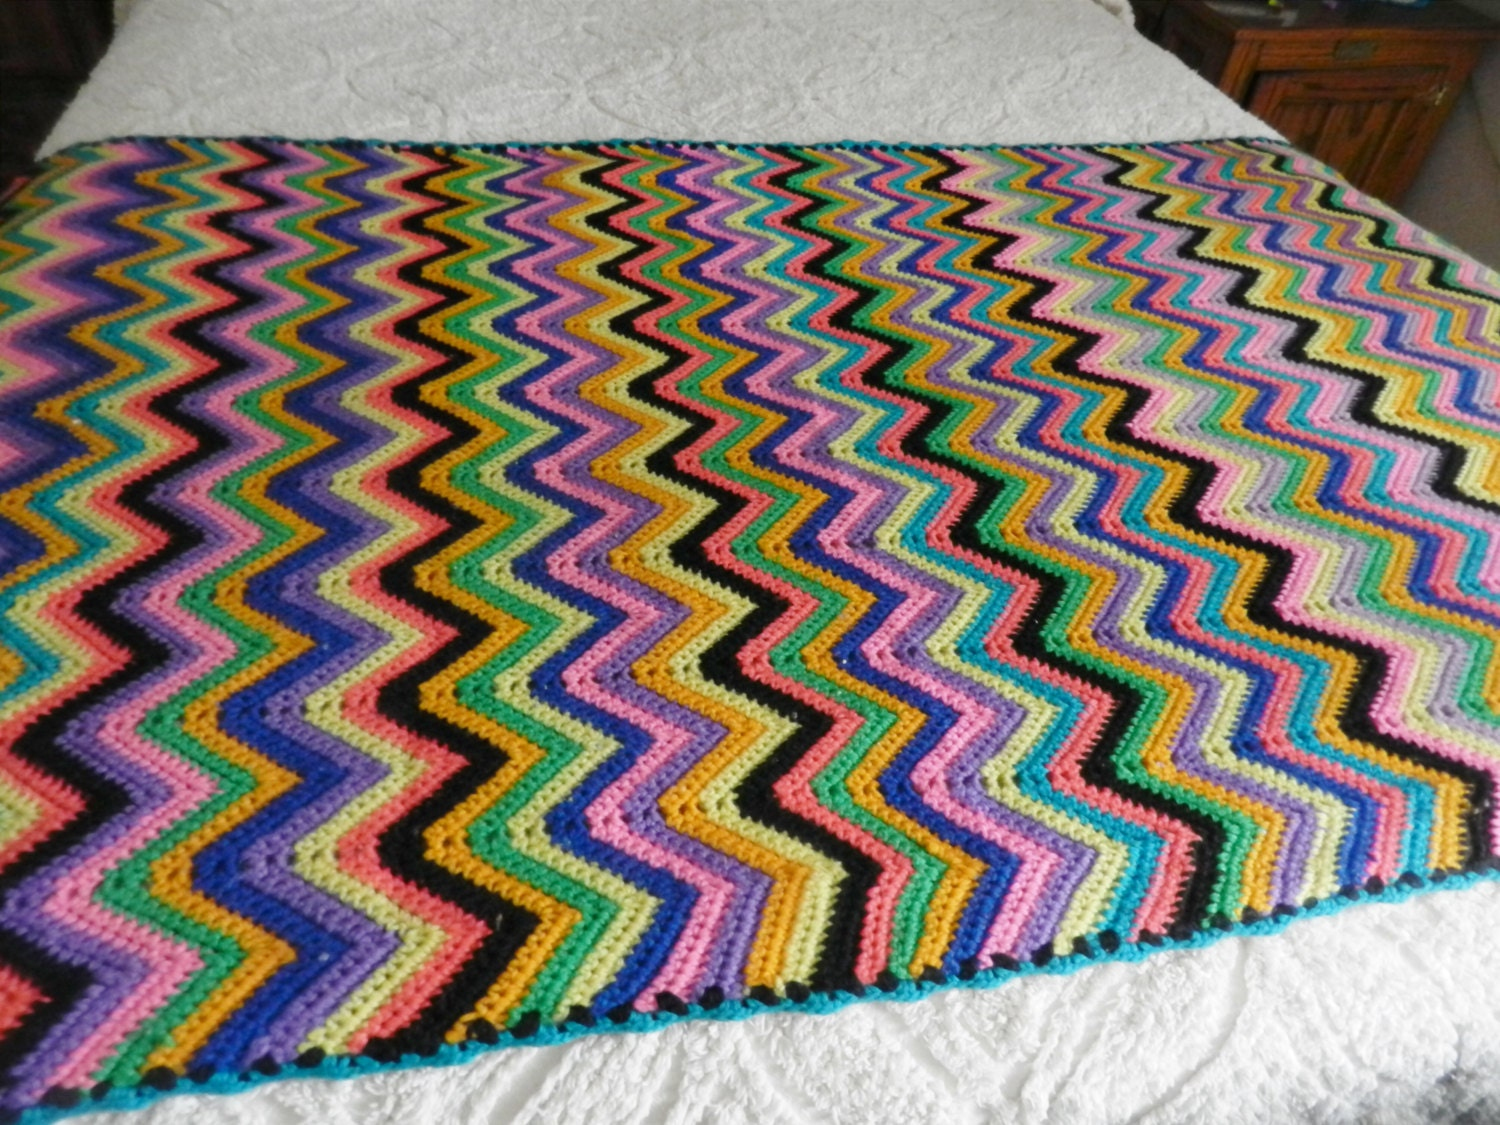 Crocheting A Zig Zag Afghan : Vintage Crocheted Zig Zag Afghan by SnowyCreekDesigns on Etsy